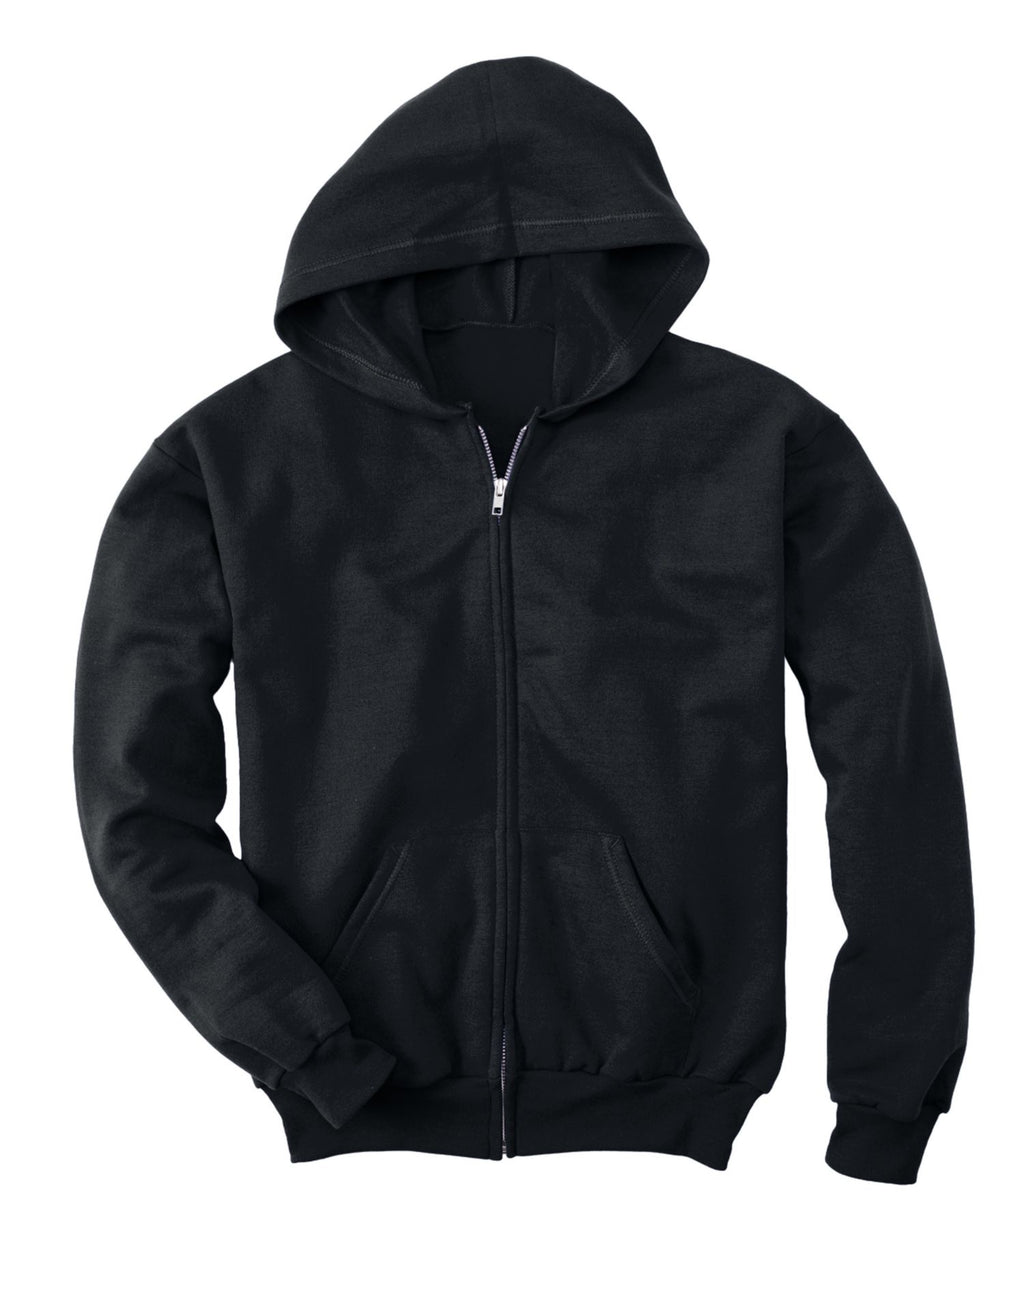 Hanes Youth ComfortBlend Full-Zip Hood 7.8 oz